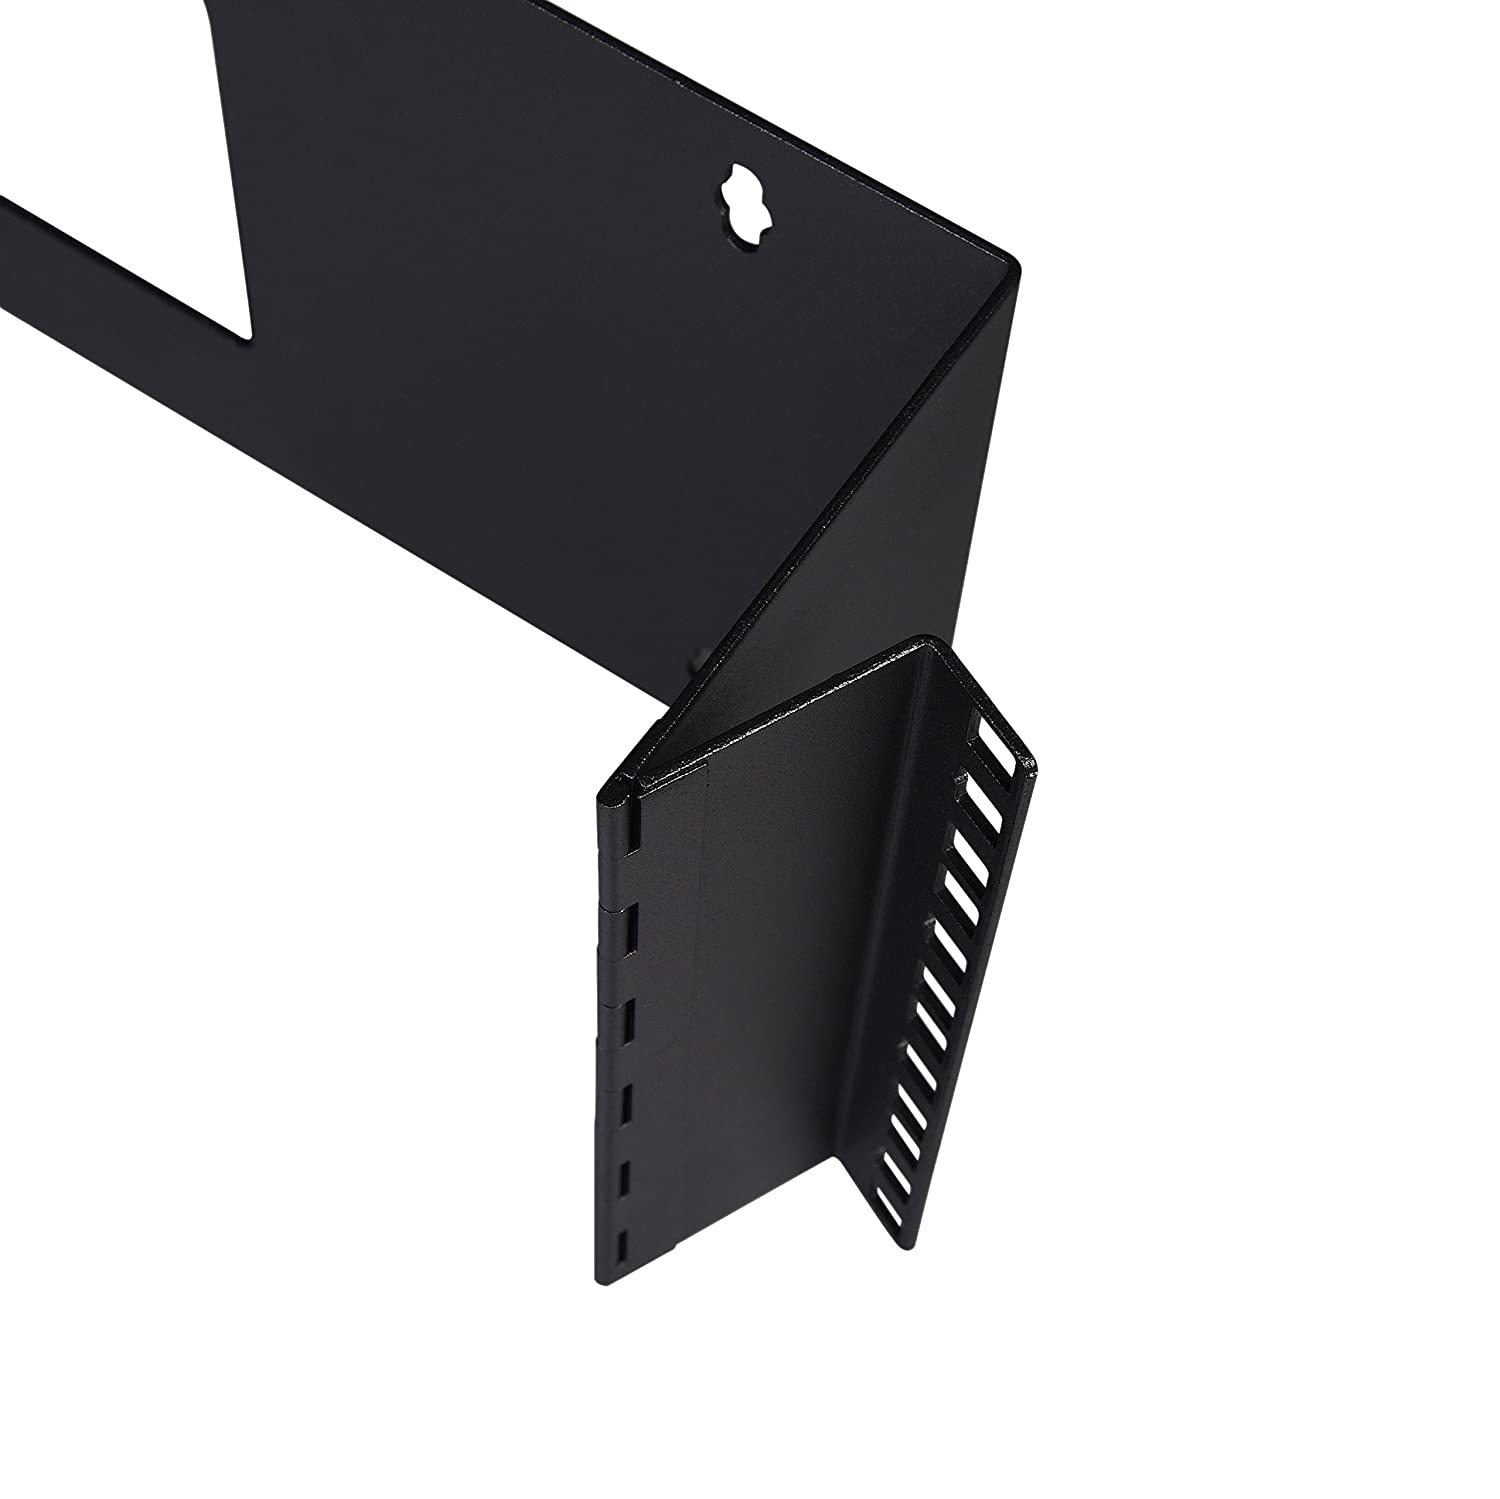 Rosewill 4U 19-inch Wall Mount Bracket for Patch Panel with Hinge Design RSA-4UB